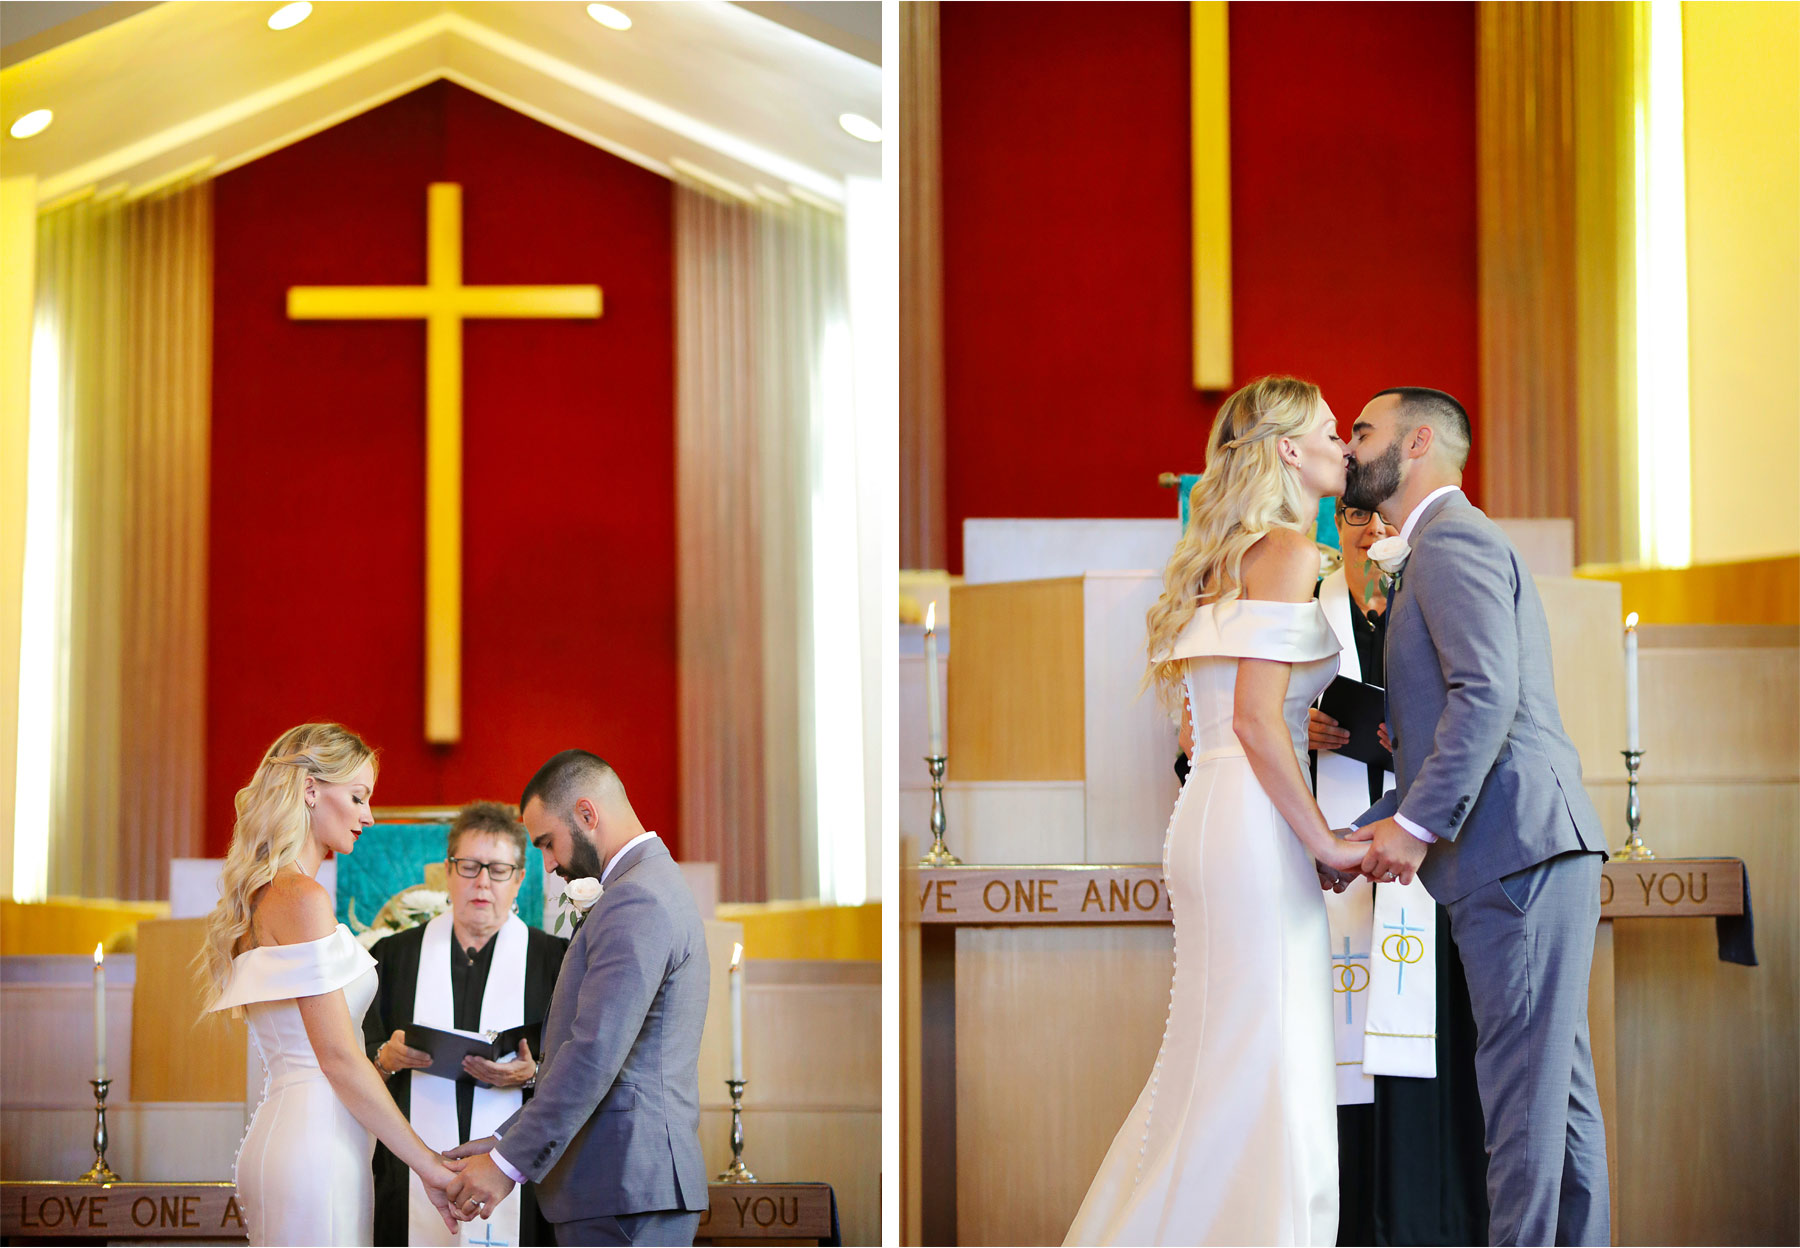 12-Ely-Minnesota-North-Wedding-by-Andrew-Vick-Photography-Bride-Groom-Ceremony-Vows-Kiss-Katie-and-Joe.jpg